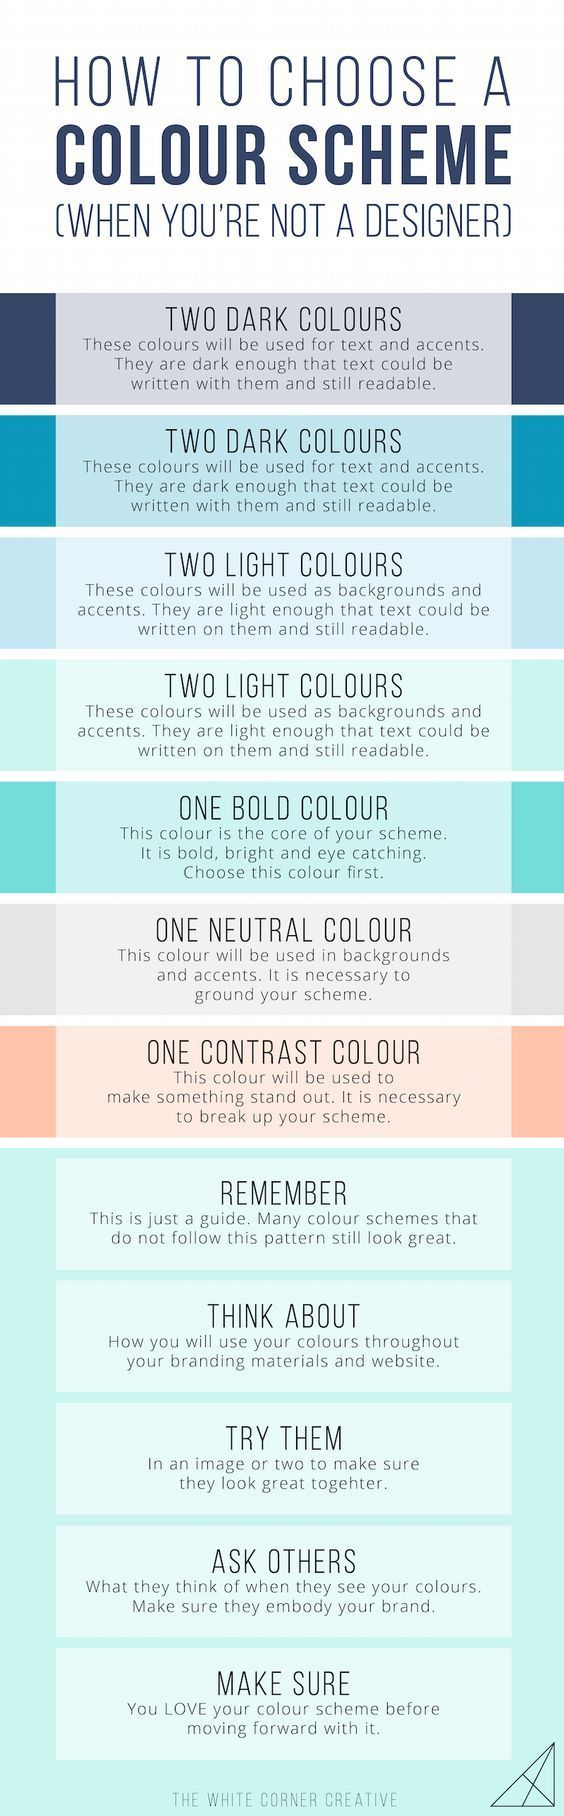 This could be very useful for the everyday person trying to create a cohesive colour scheme.